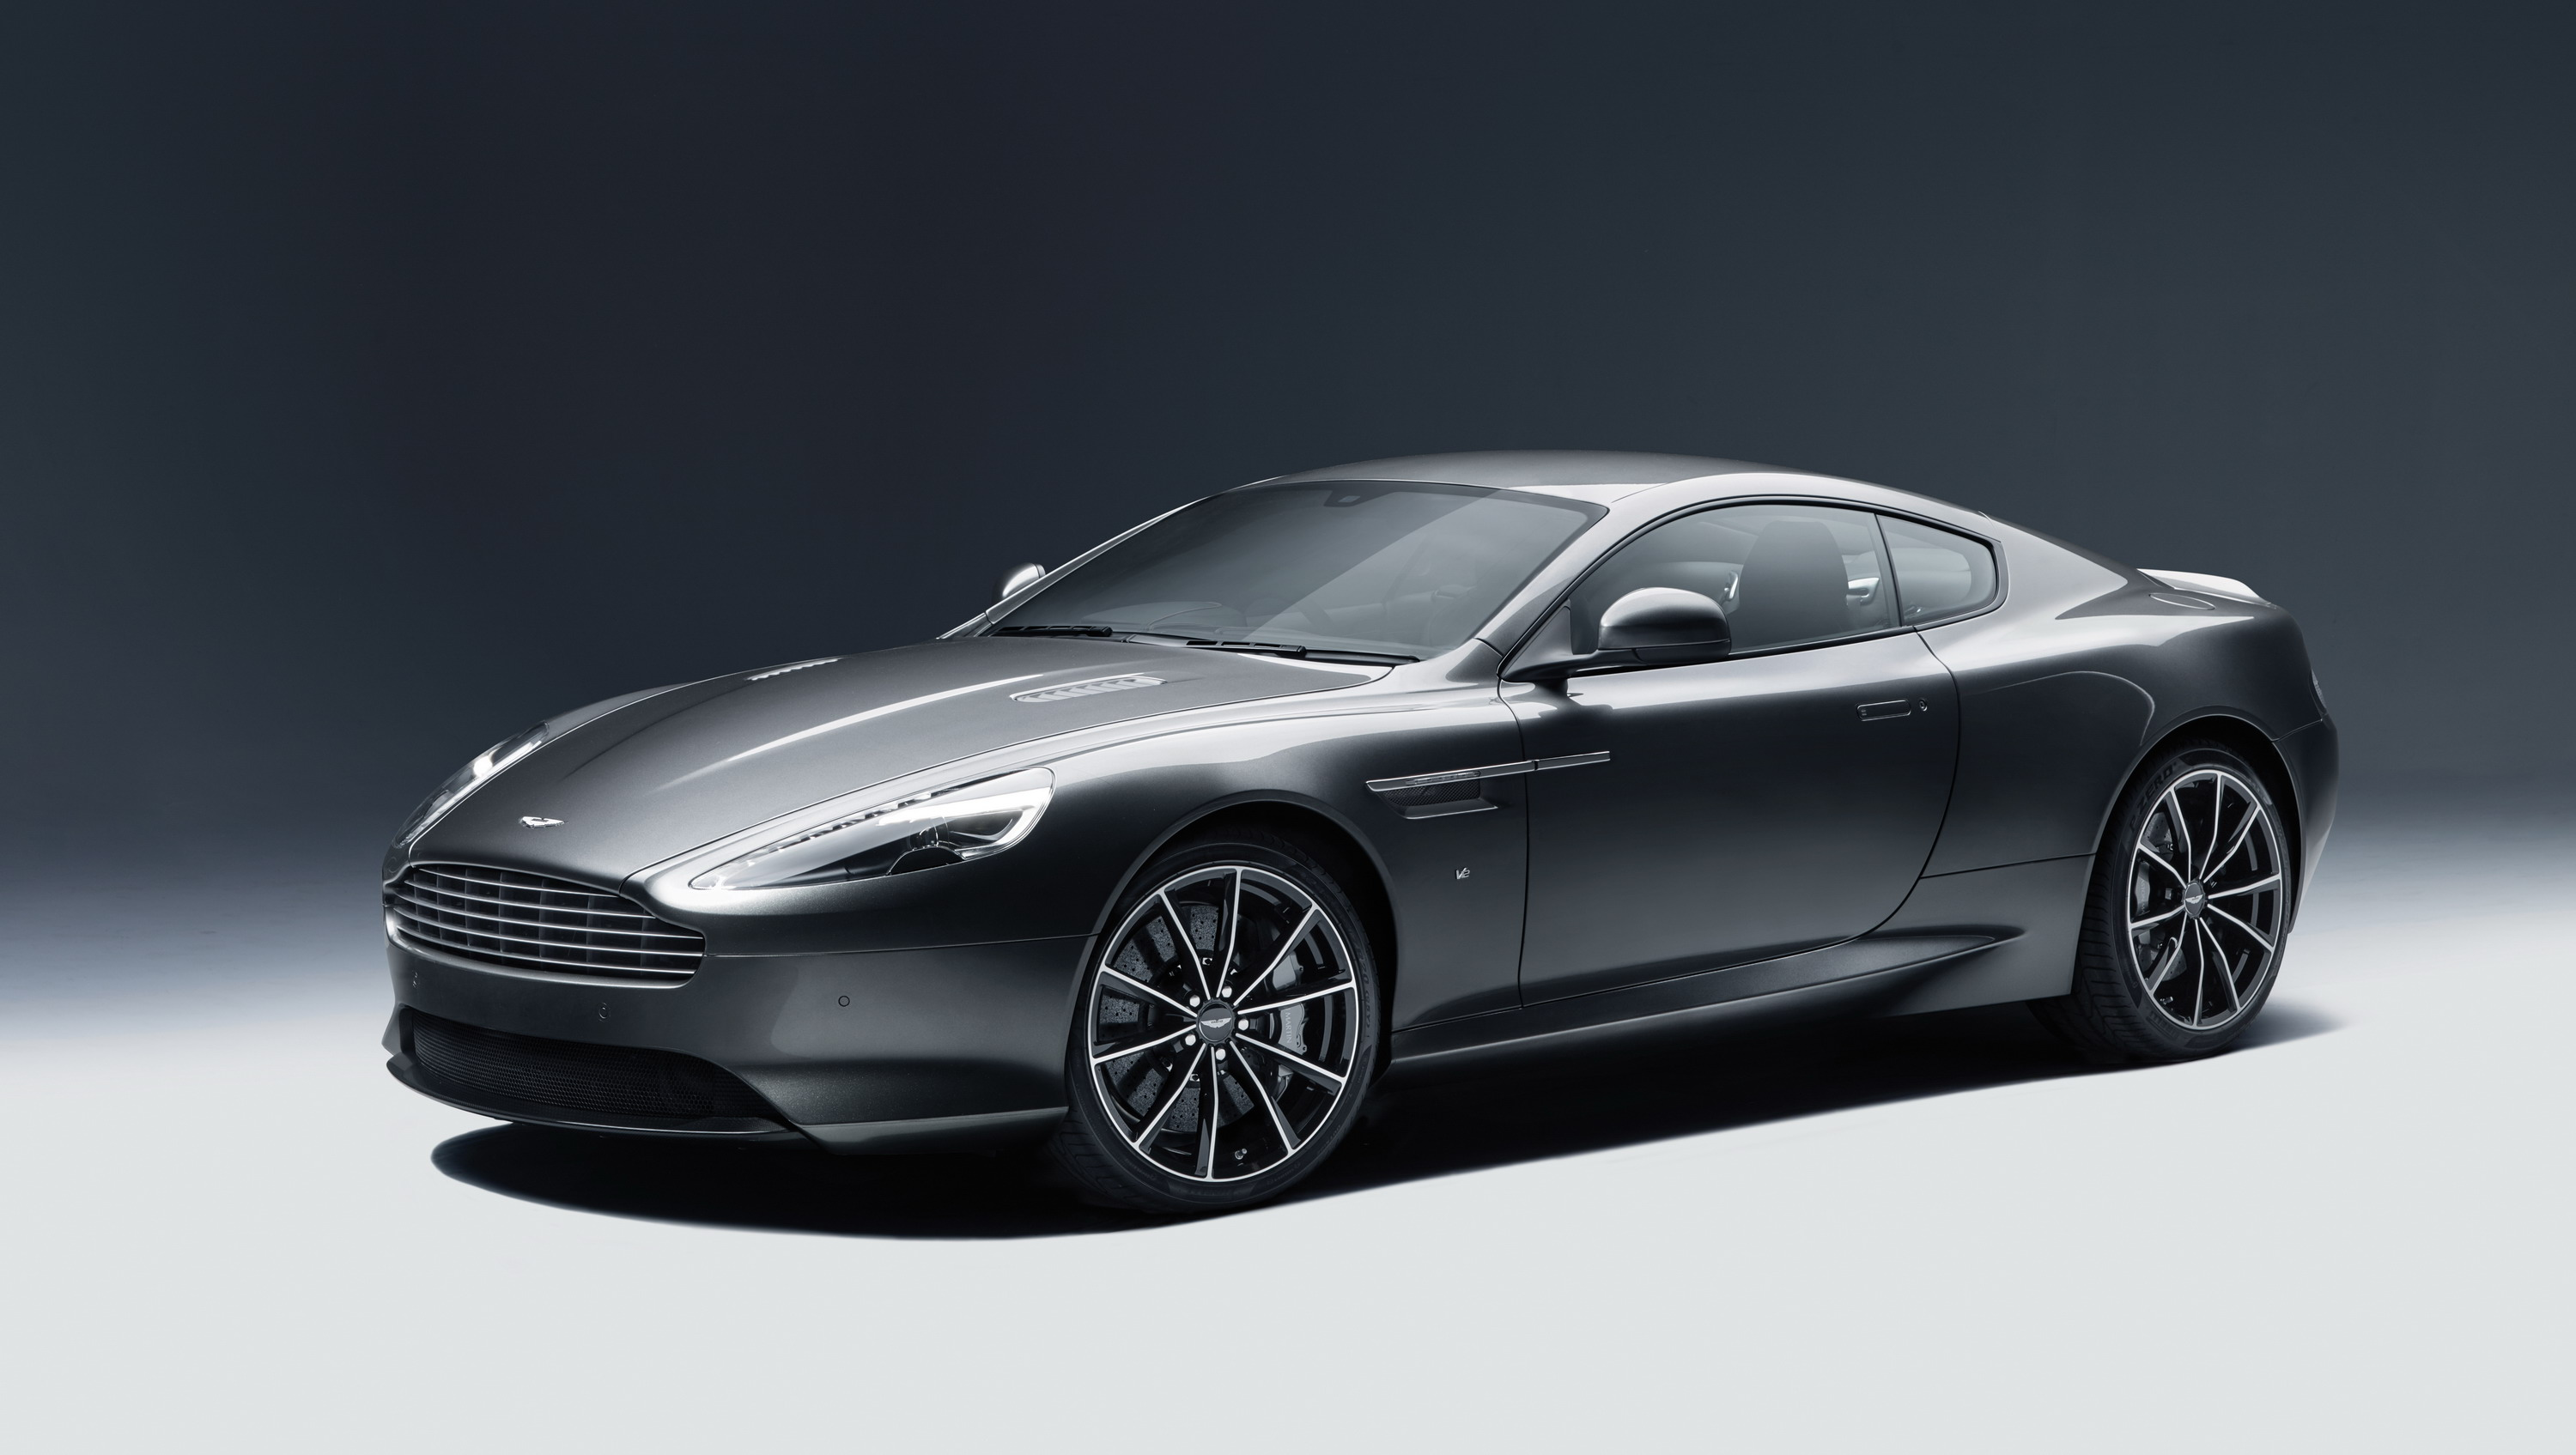 aston-martin db9 reviews, specs & prices - top speed